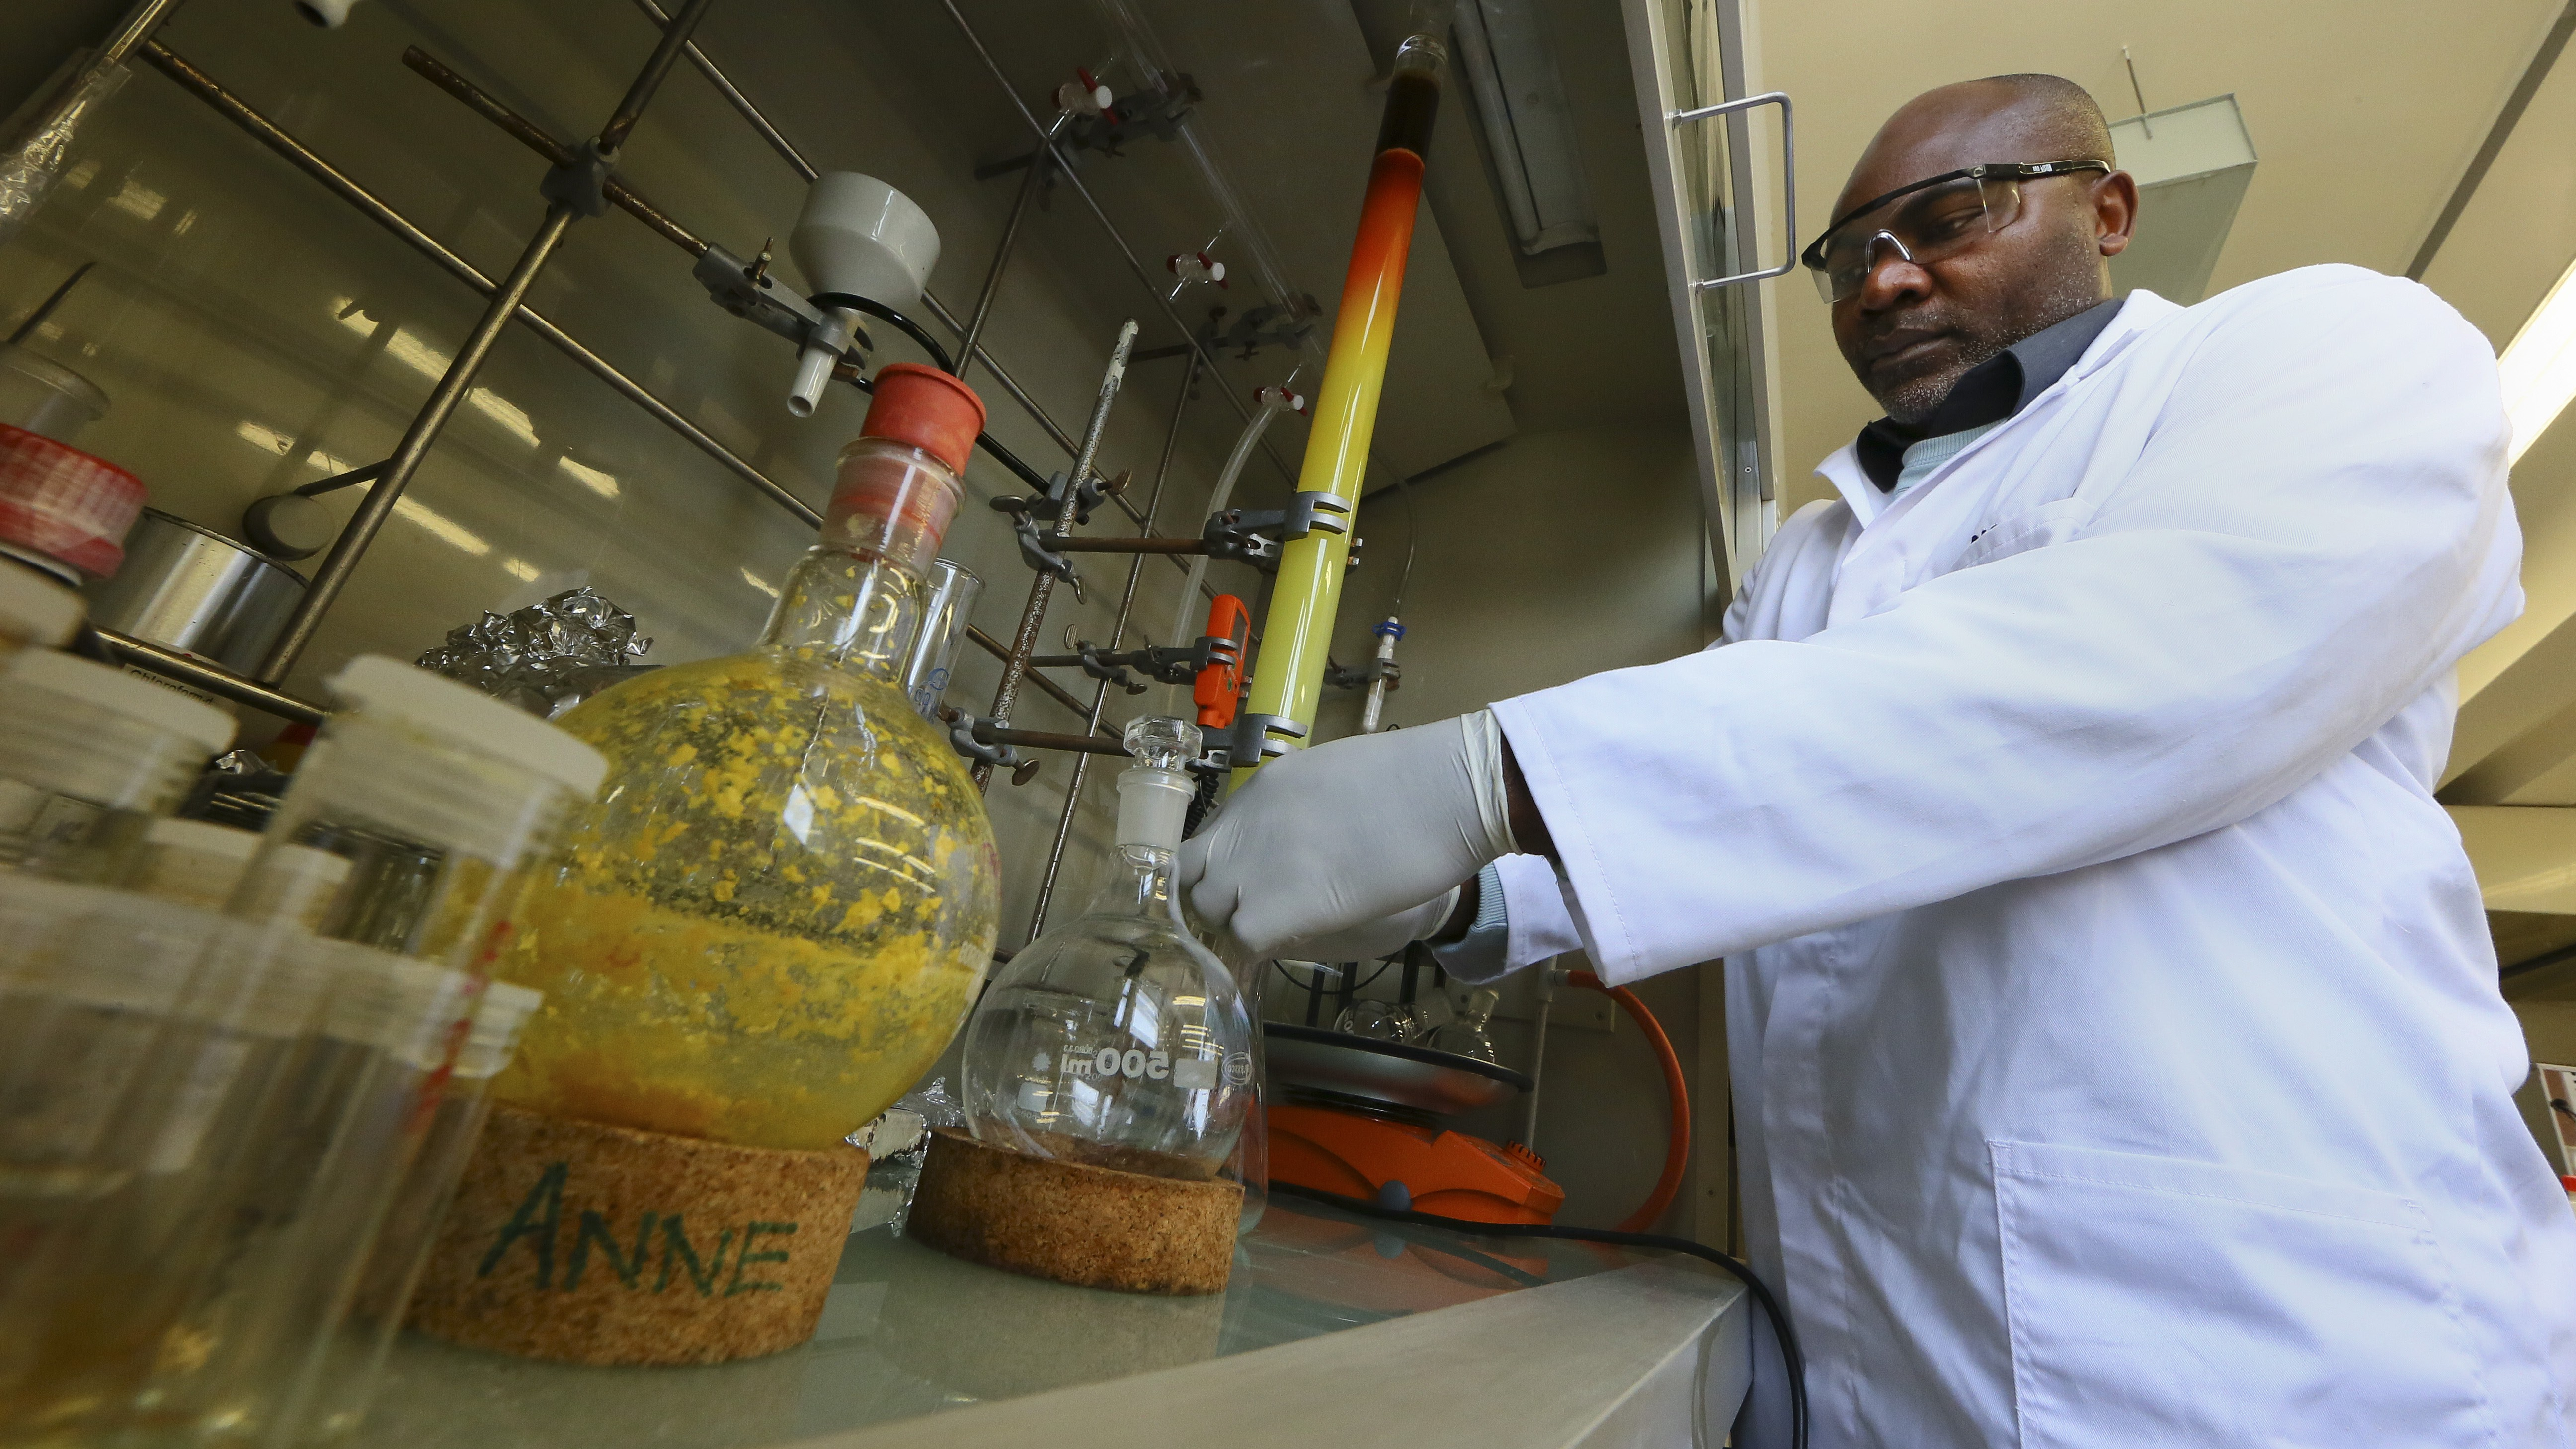 epa03374989 A University of Cape Town (UCT) scientist works in the Drug Discovery and Development Centre (H3-D) laboratory in Cape Town, South Africa, 30 August 2012. South African Science and Technology Minister Naledi Pandor announced 28 August 2012 the discovery of a compound that has the potential to become a single-dose cure for all strains of Malaria. The synthetic molecule from the aminopyridine class  was discovered by the H3-D scientists in collaboration with the Medicines for Malaria Venture (MMV) from Switzerland. Professor Kelly Chibale from UCT, leading researcher of the collaborative research project is quoted as saying the molecule had not been tested on humans yet but animal studies had shown 'potent activity against multiple points in the malaria parasite's lifecycle' This is the first compound researched in Africa to enter pre-clinical development that may lead to the single dose cure for Malaria as well as be able to block transmission of the parasite from person to person.  EPA/NIC BOTHMA